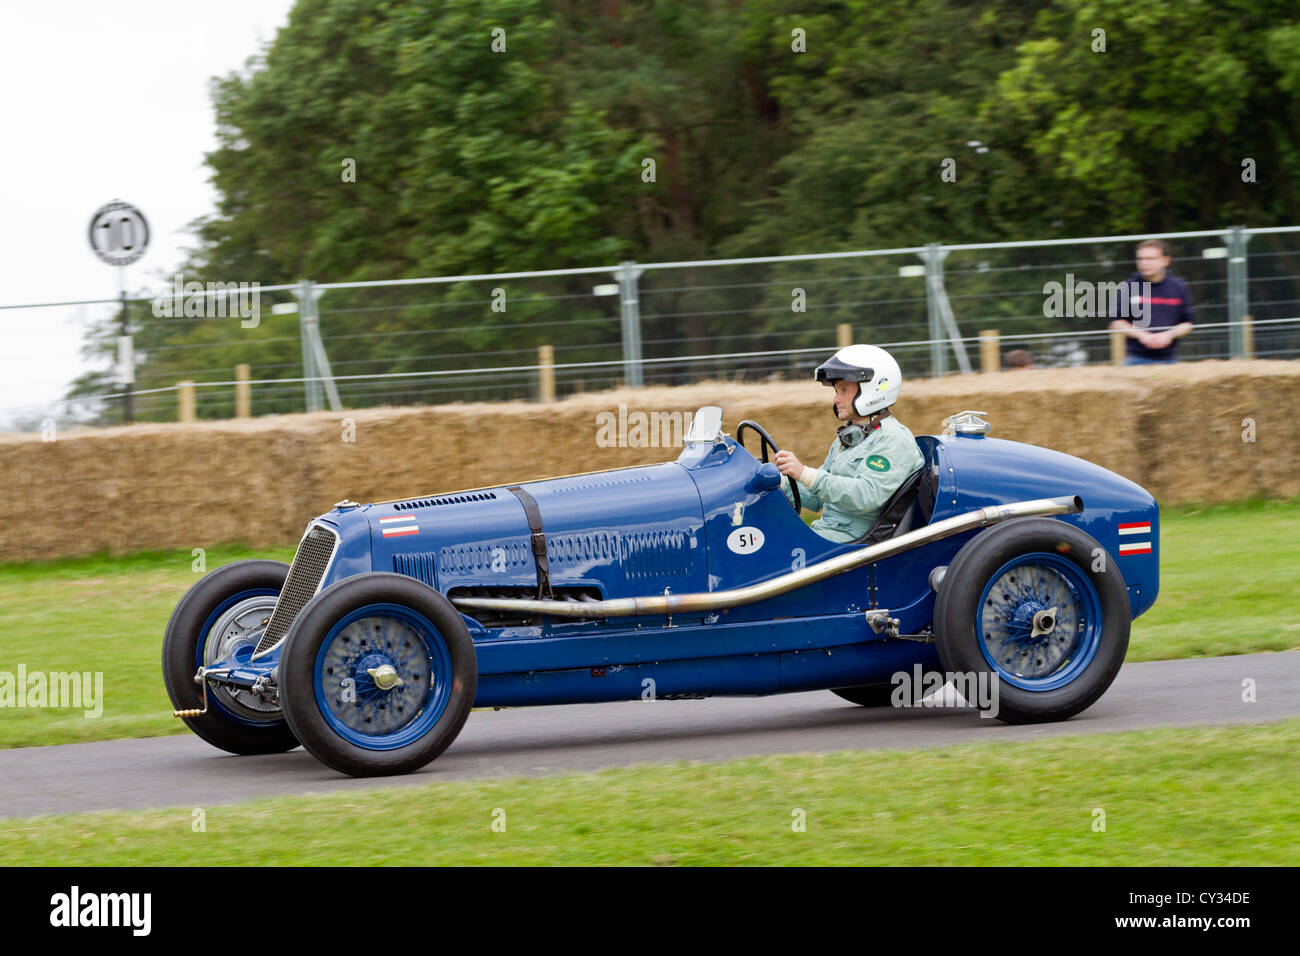 1934 Maserati 8CM with driver Robert Newall at the 2012 Goodwood Festival of Speed, Sussex, UK. - Stock Image